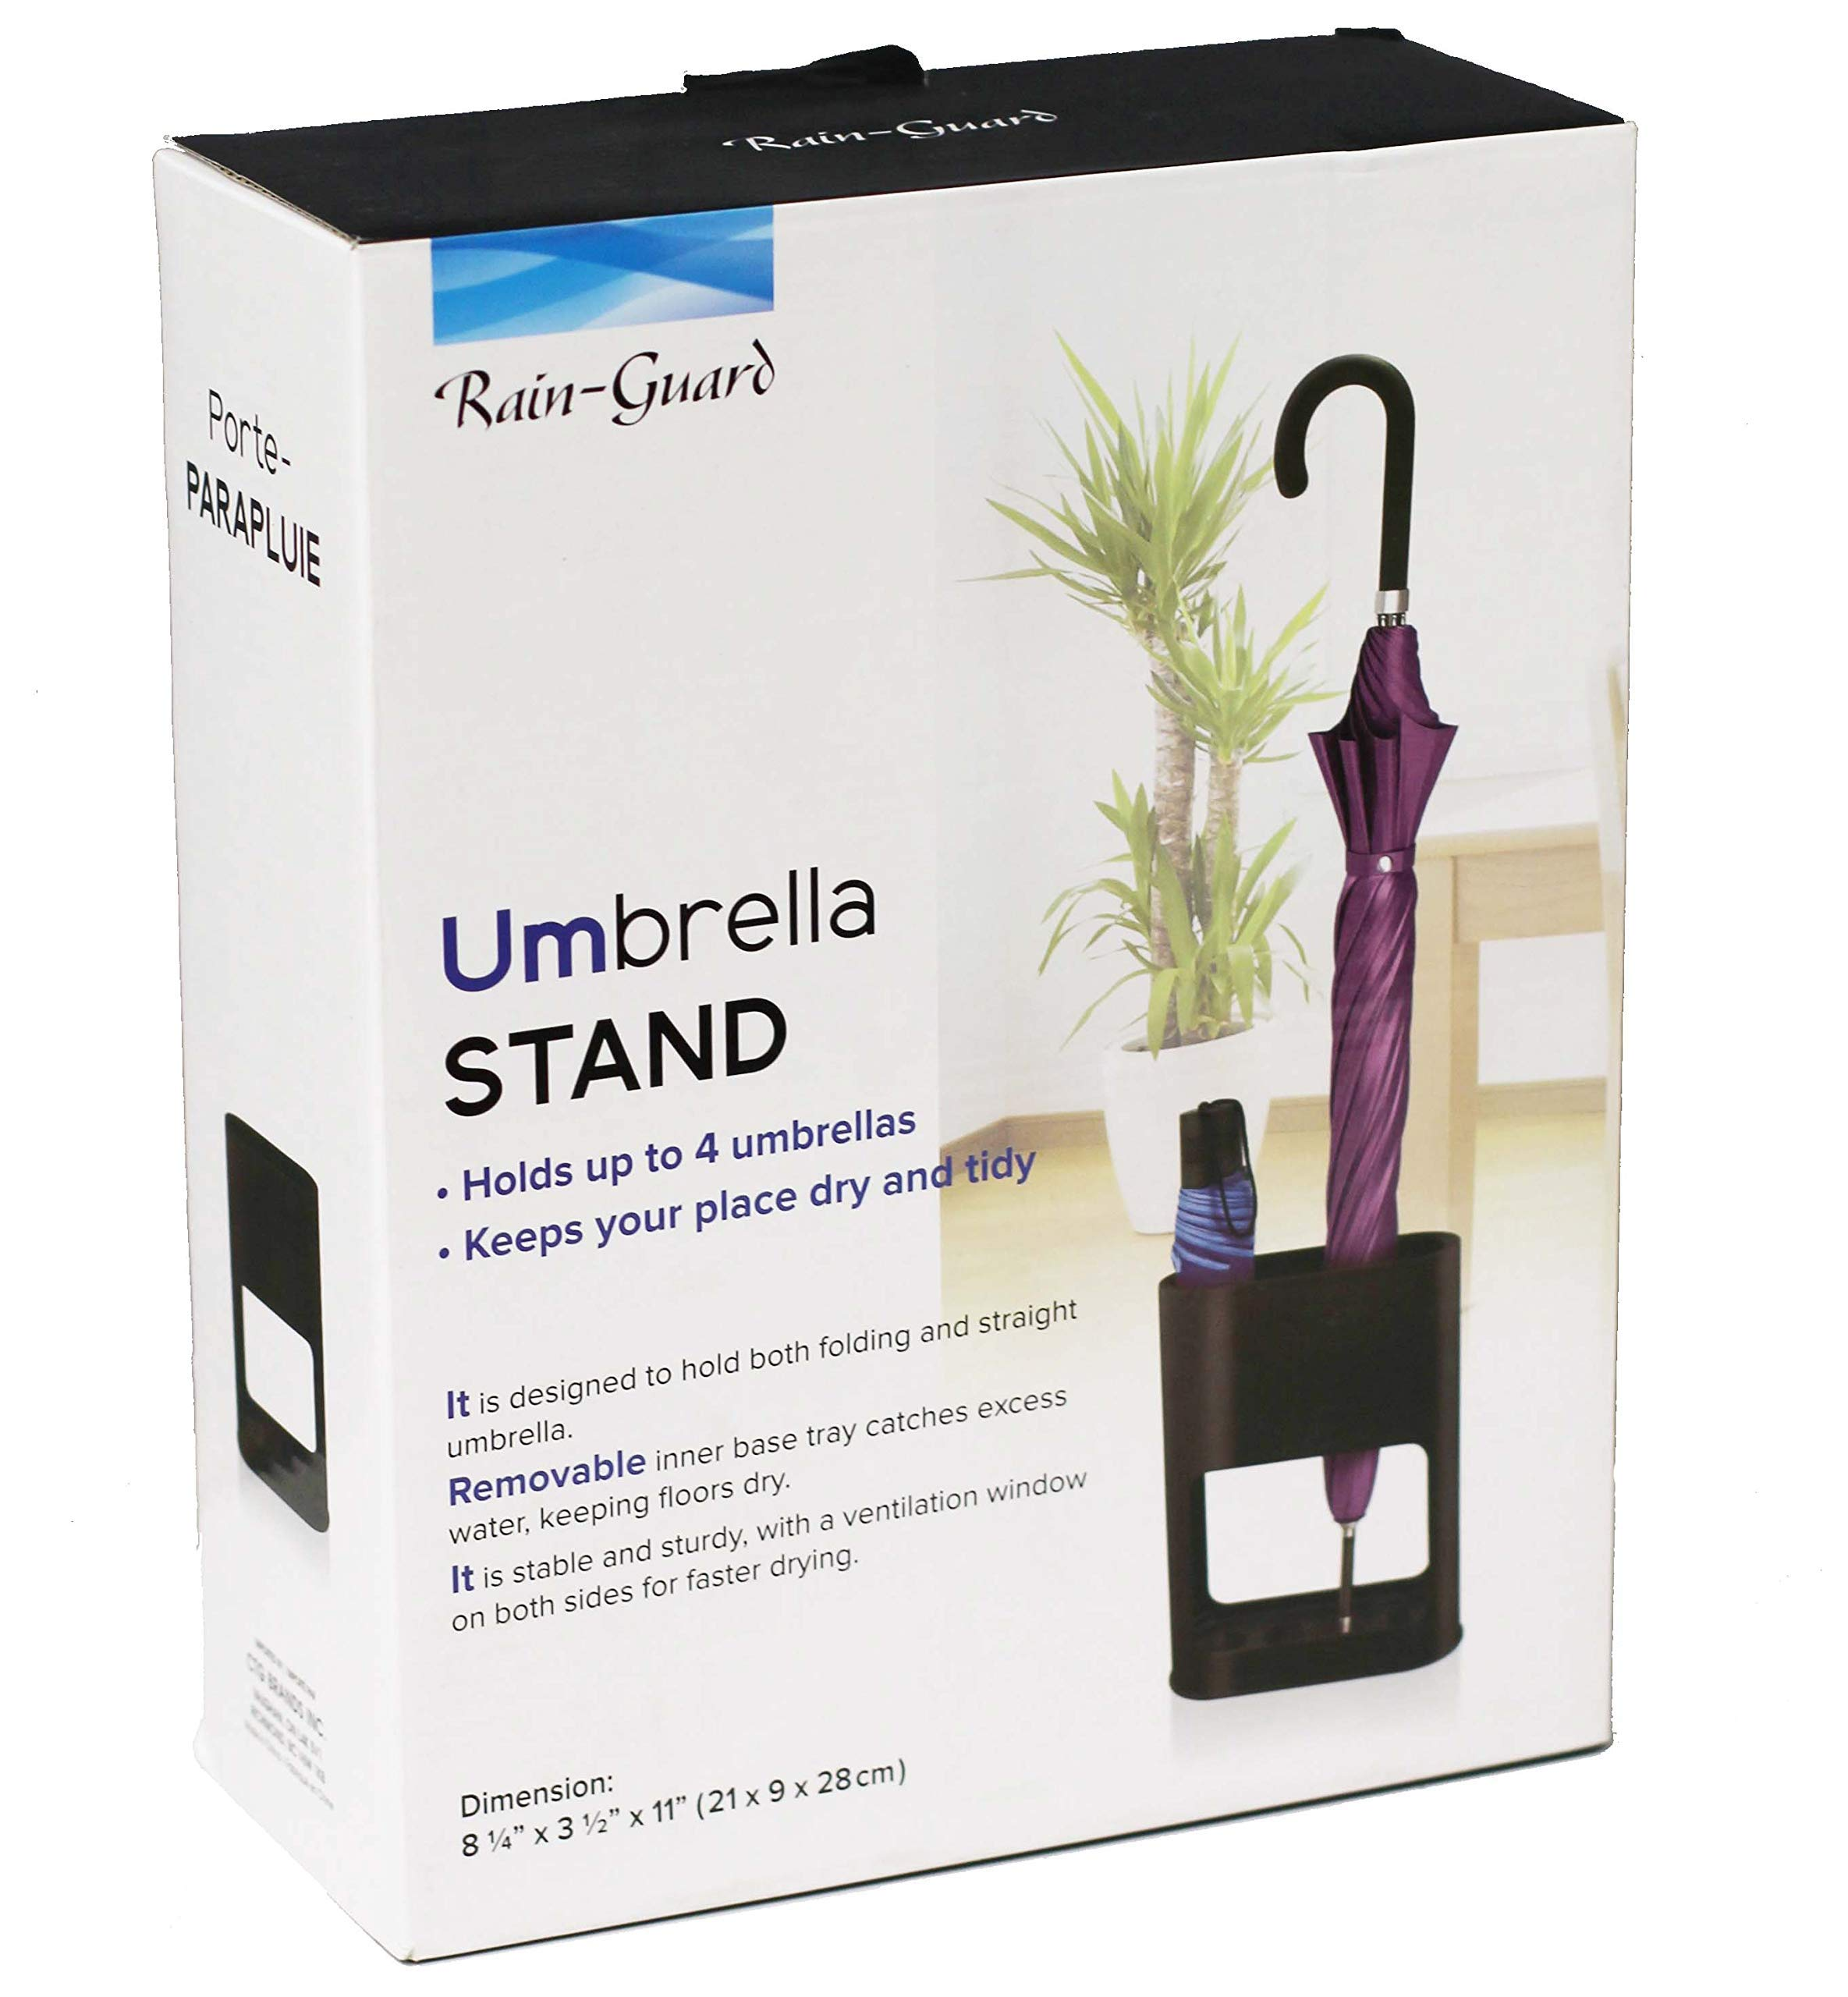 Umbrella Stand Rack - Protects Your Floors and Keeps You Organized - Freestanding Umbrella Holder with Removable Drain Tray - for Canes, Walking Sticks - 21x9x28cm (Black)